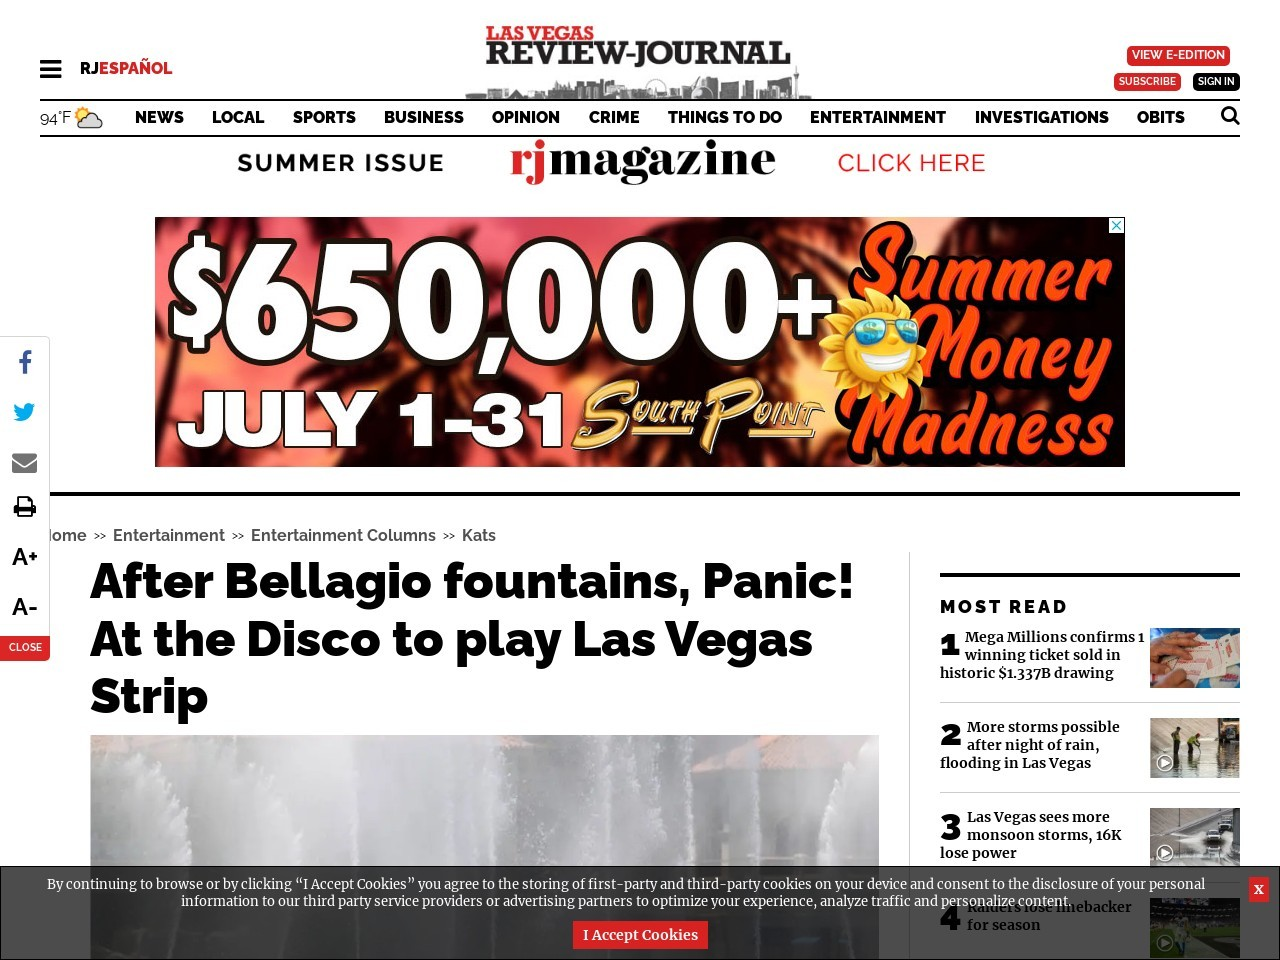 After Bellagio fountains, Panic! At the Disco to play Las Vegas Strip